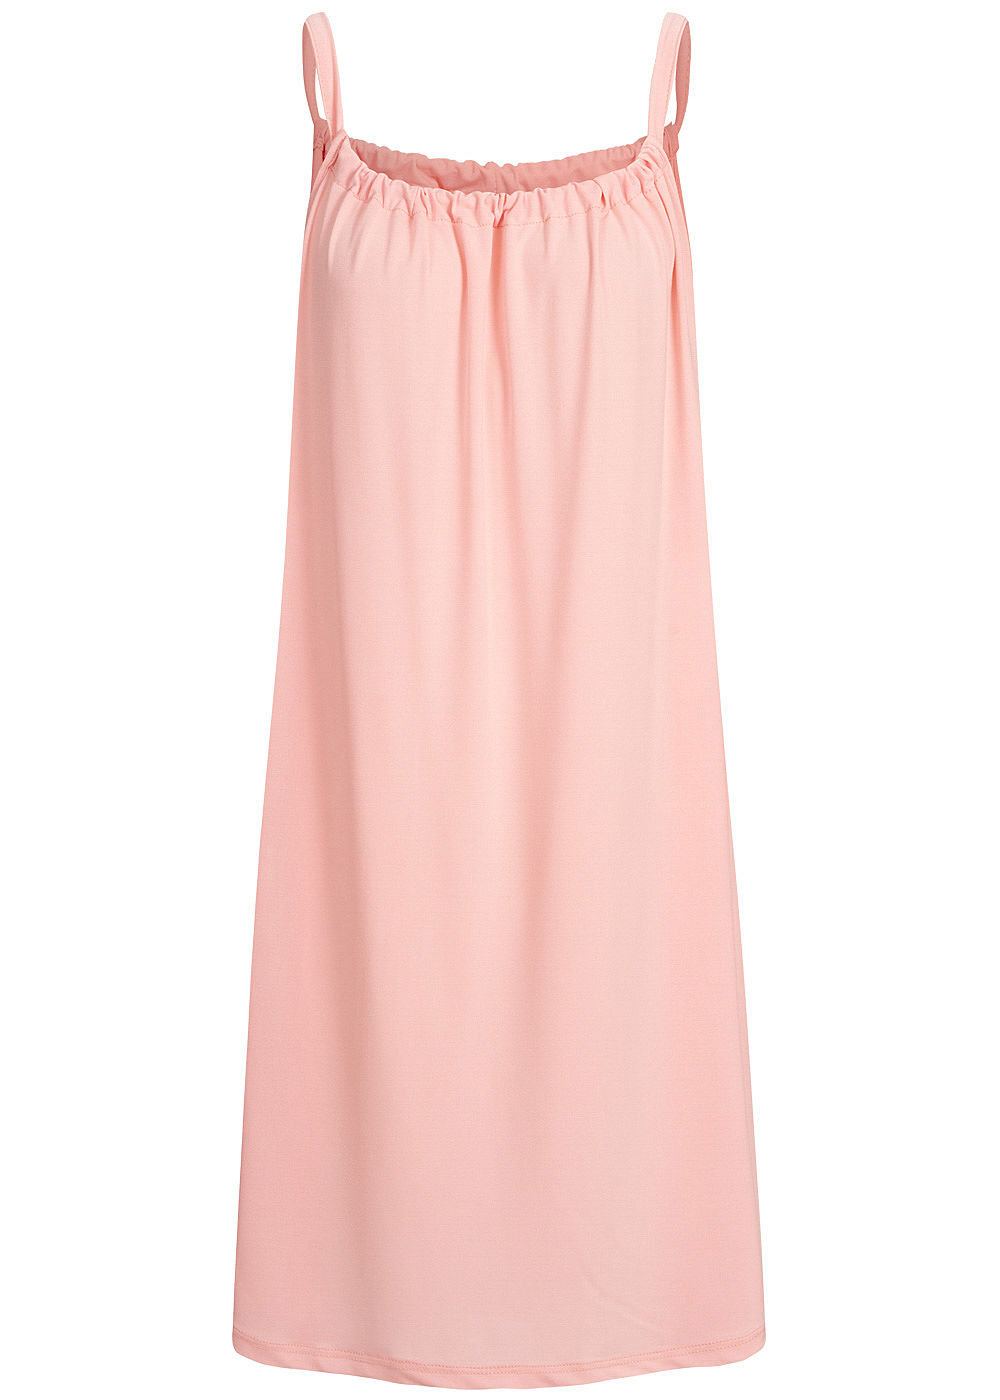 Styleboom Fashion Damen A-Line Beach Strap Dress rosa - Art.-Nr.: 19076537